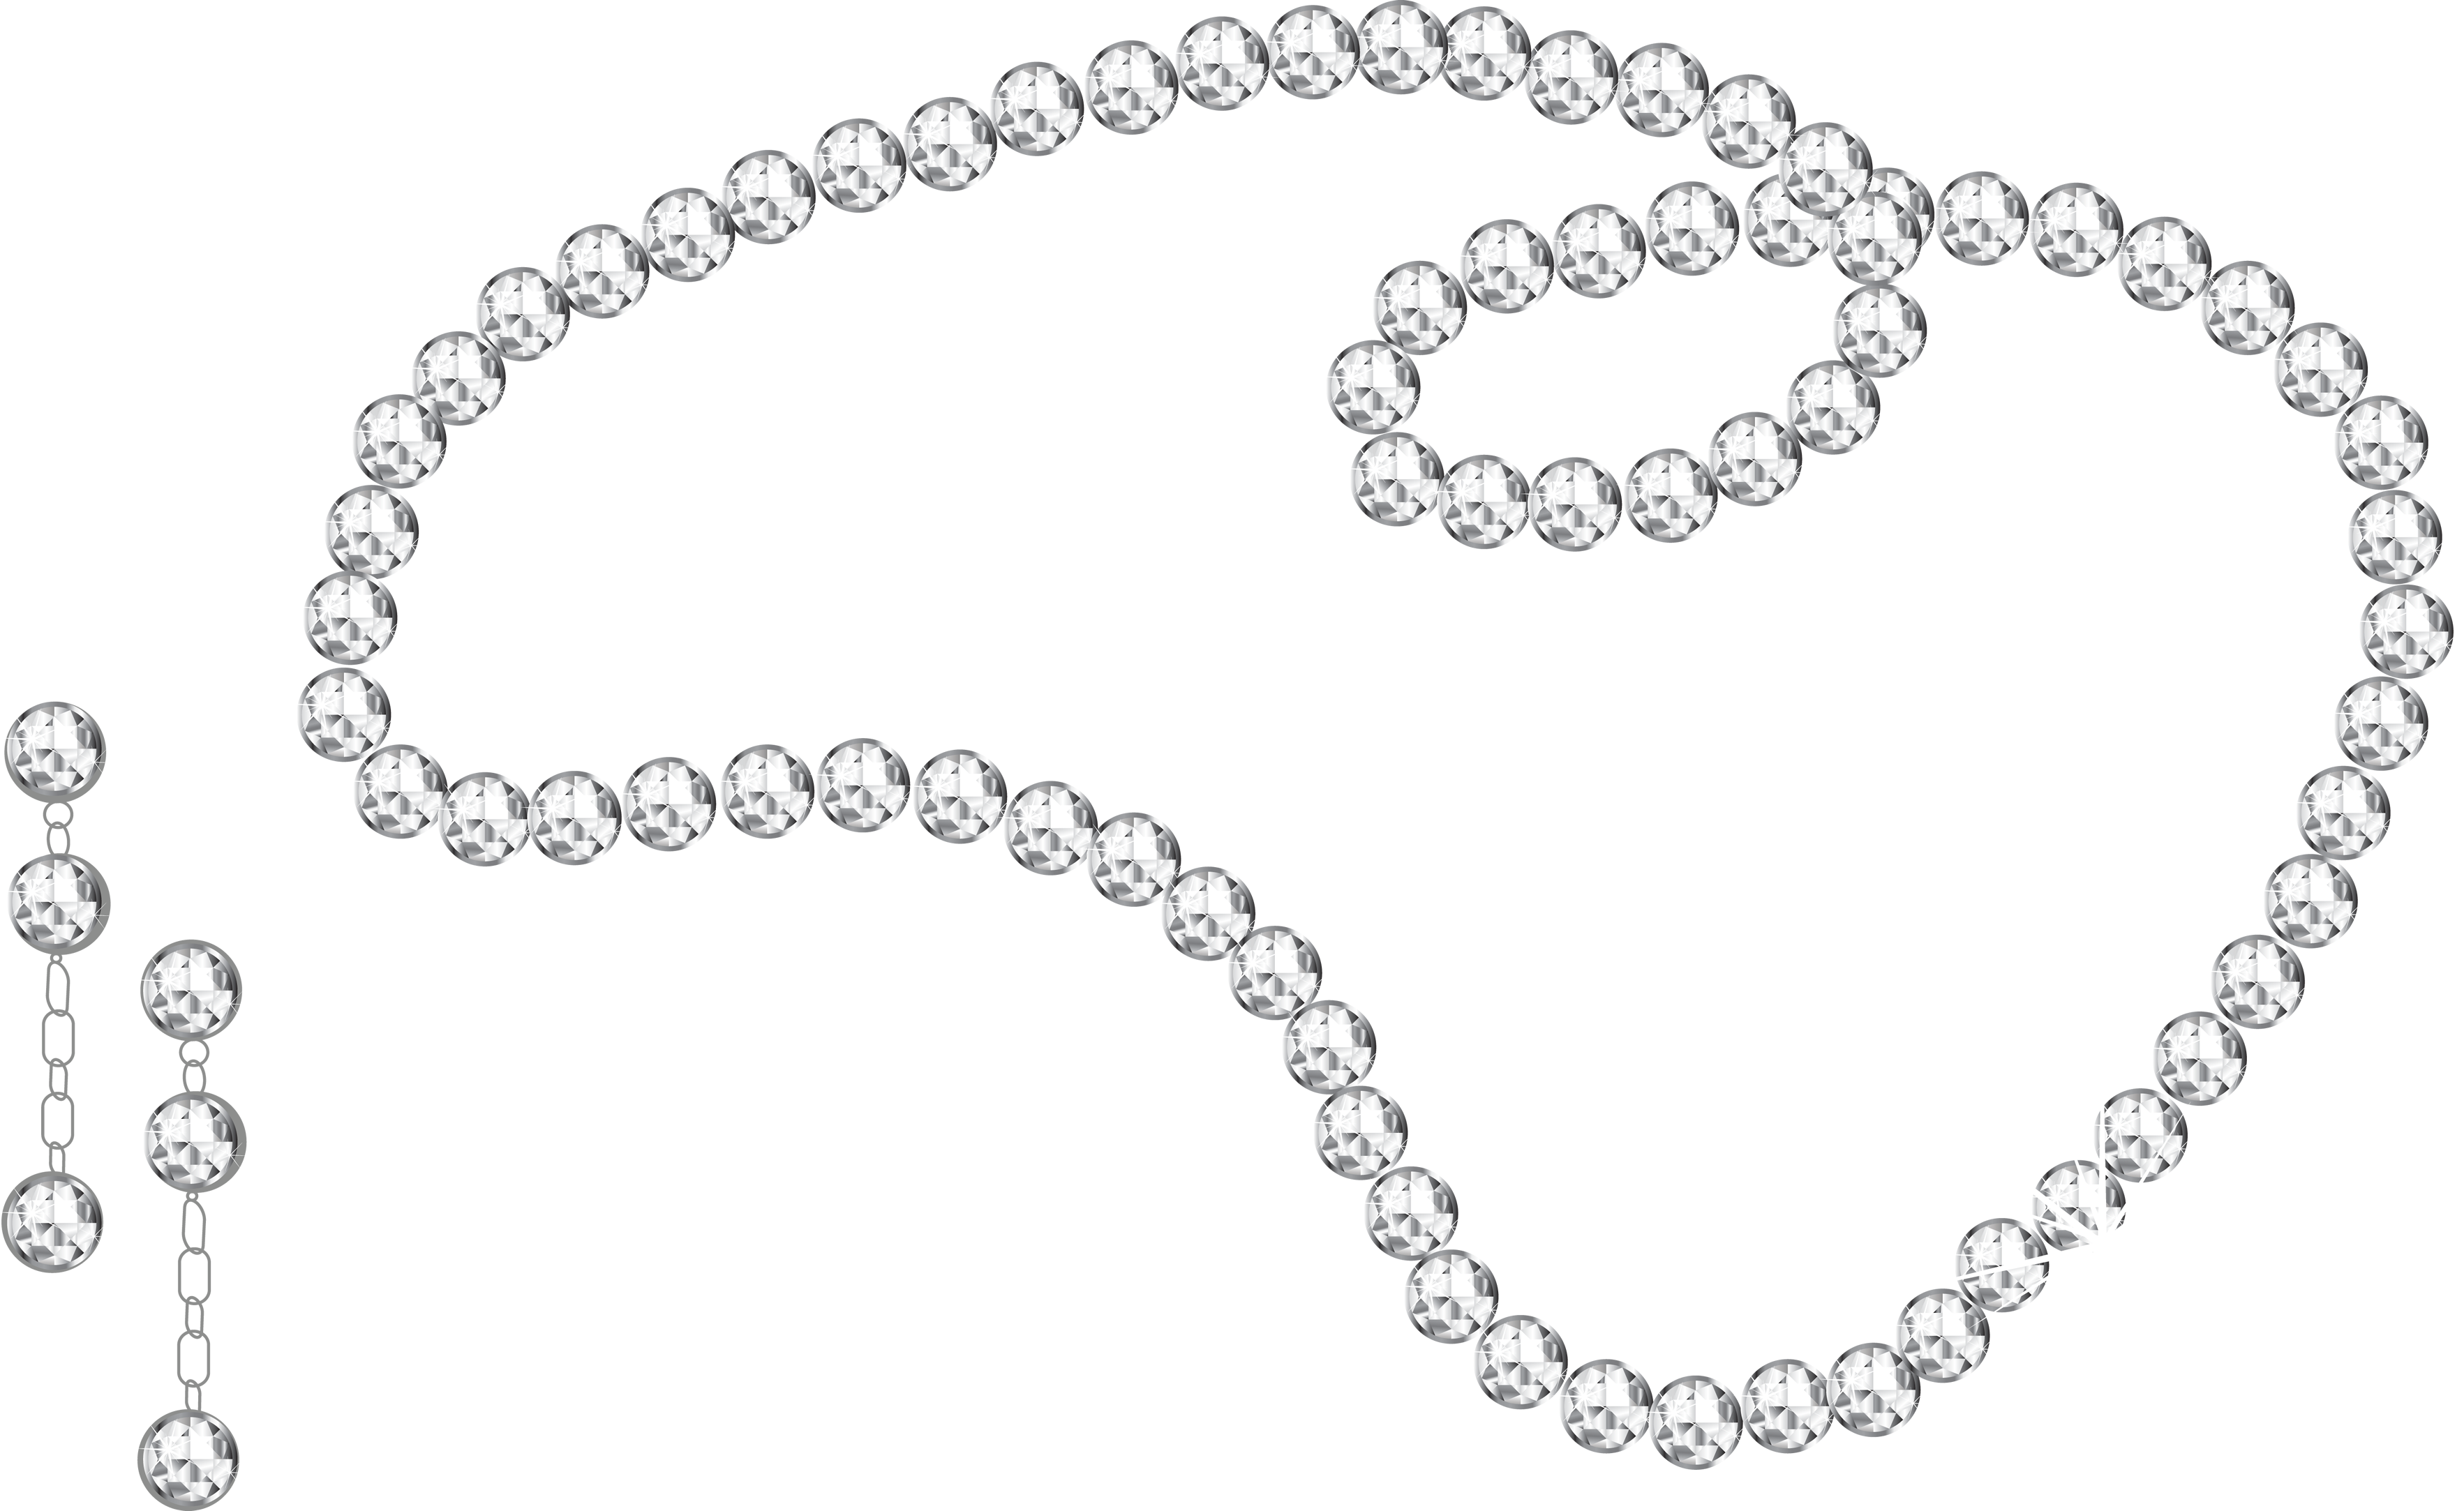 Diamond Necklace And Earrings Png Image Diamond Jewelry Earrings Diamond Pearl And Diamond Necklace